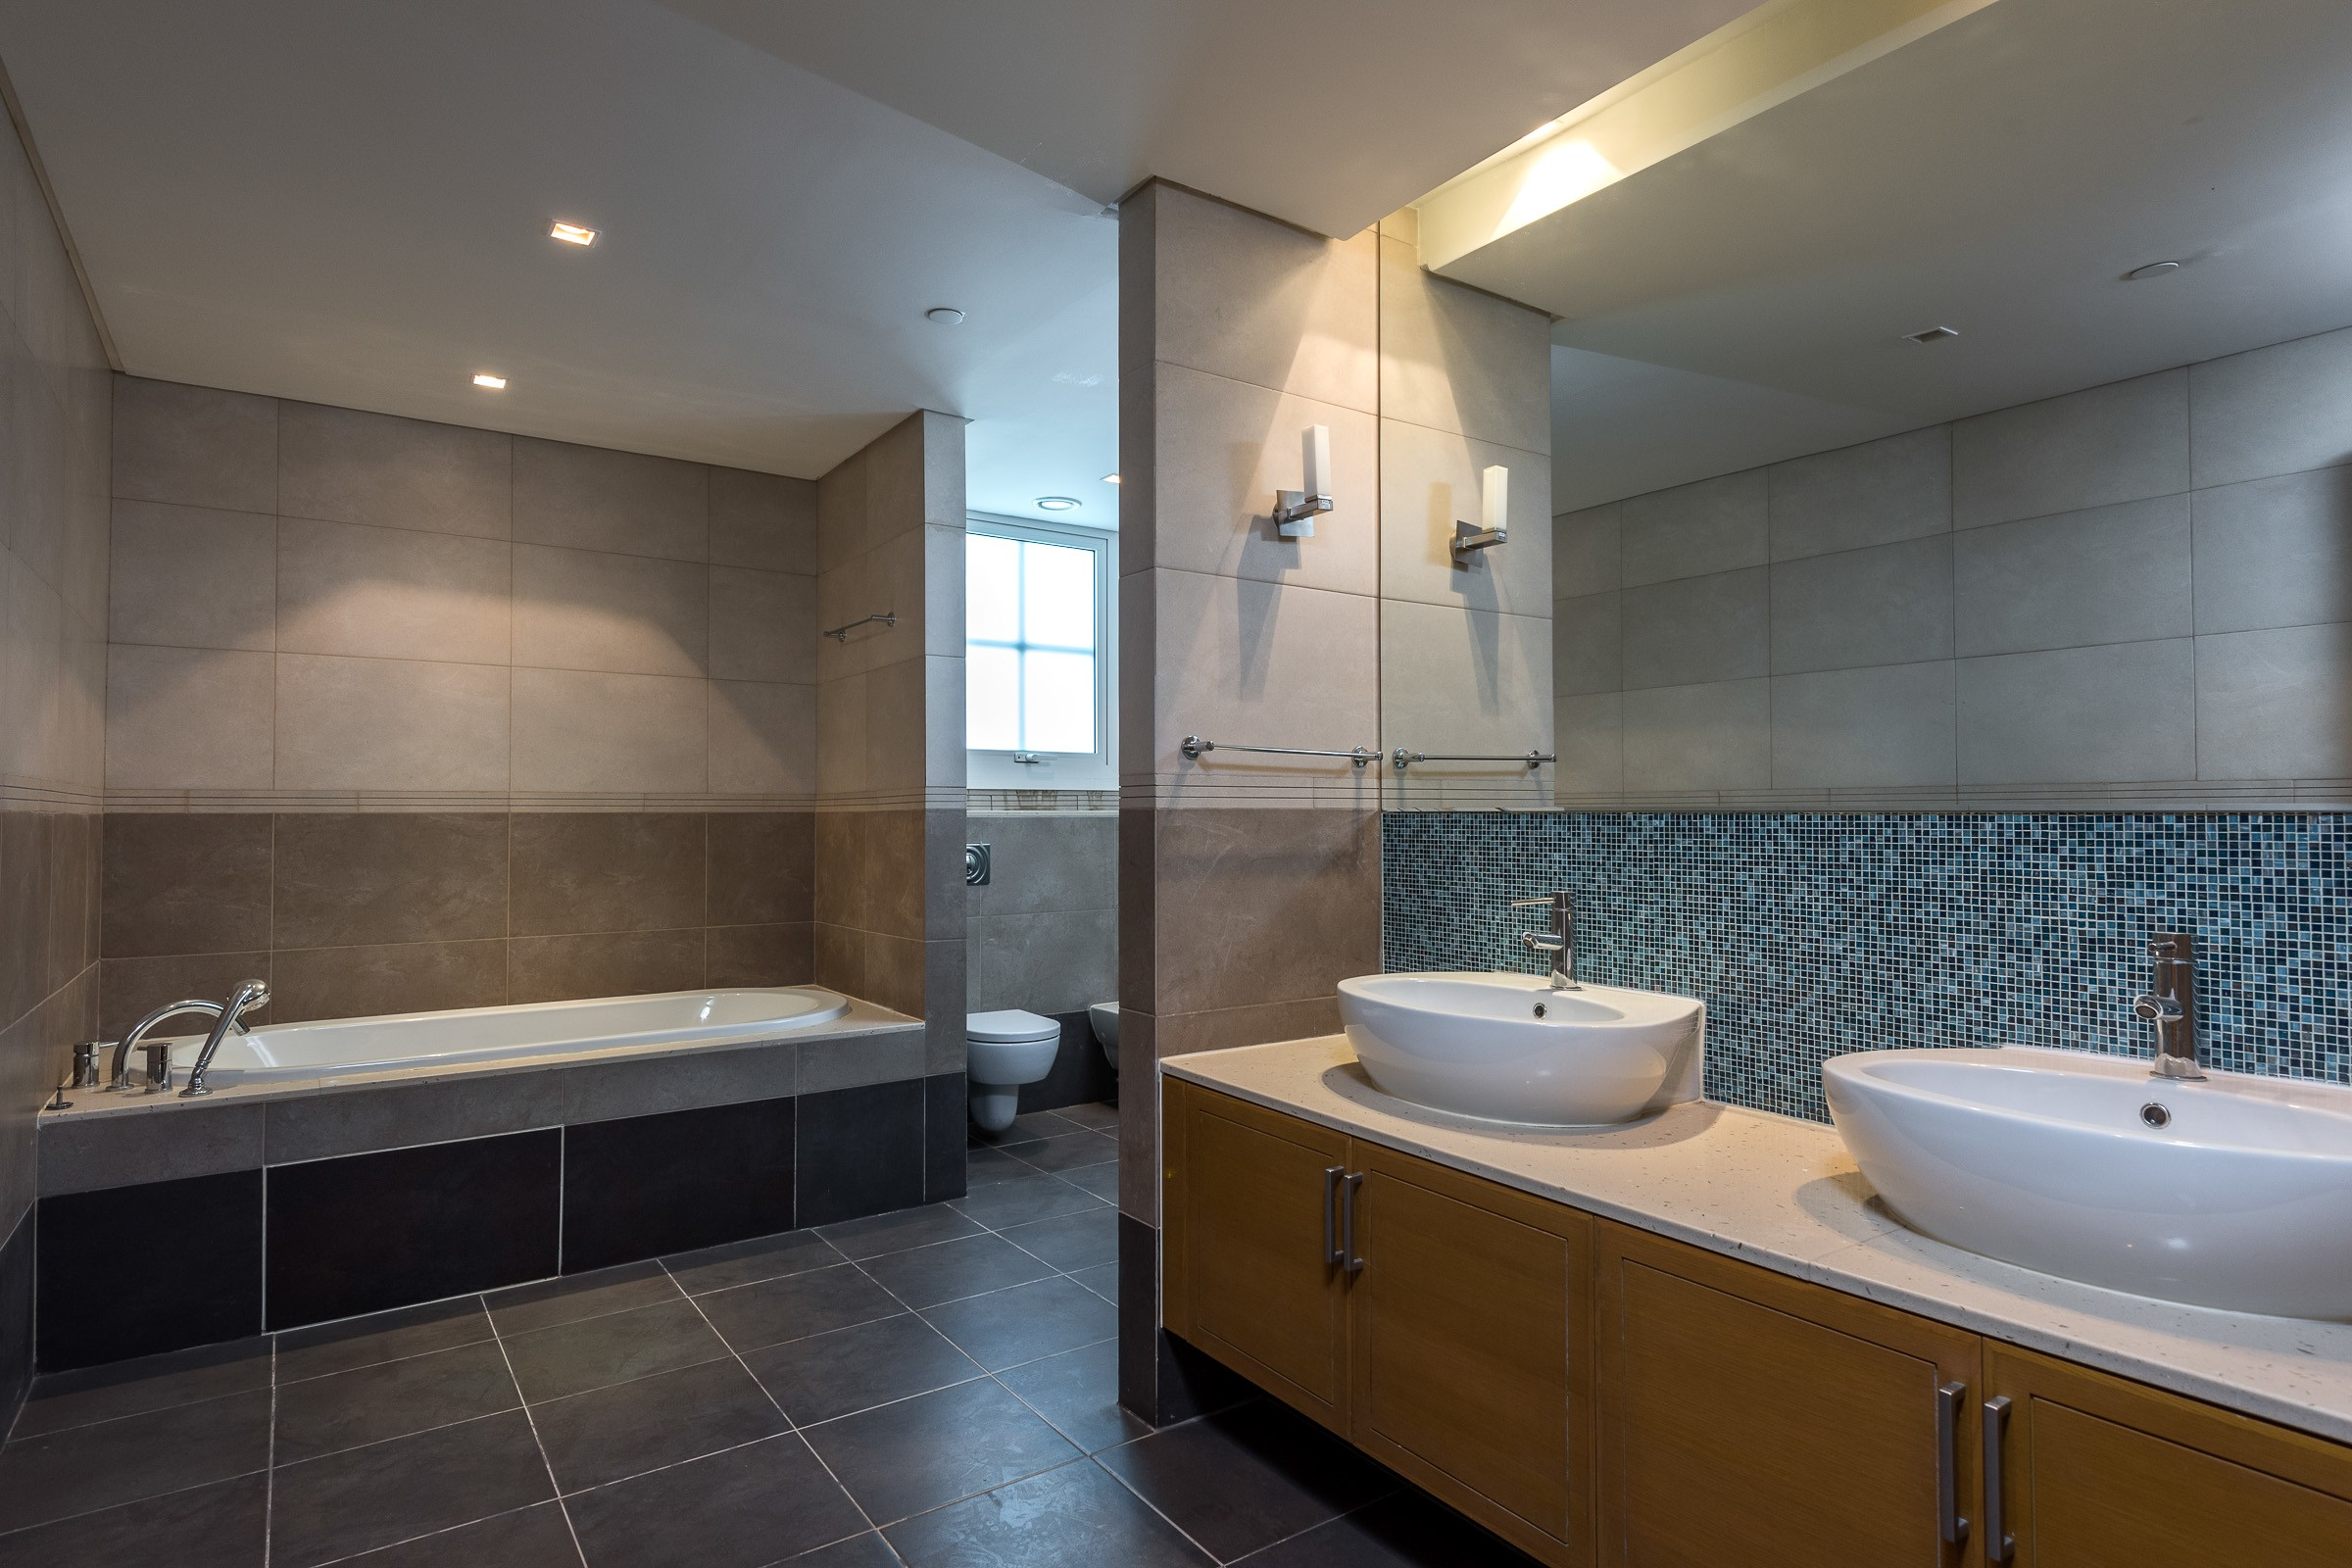 4700 Sq.Ft | 3 Bed + M | Type A | Vacant